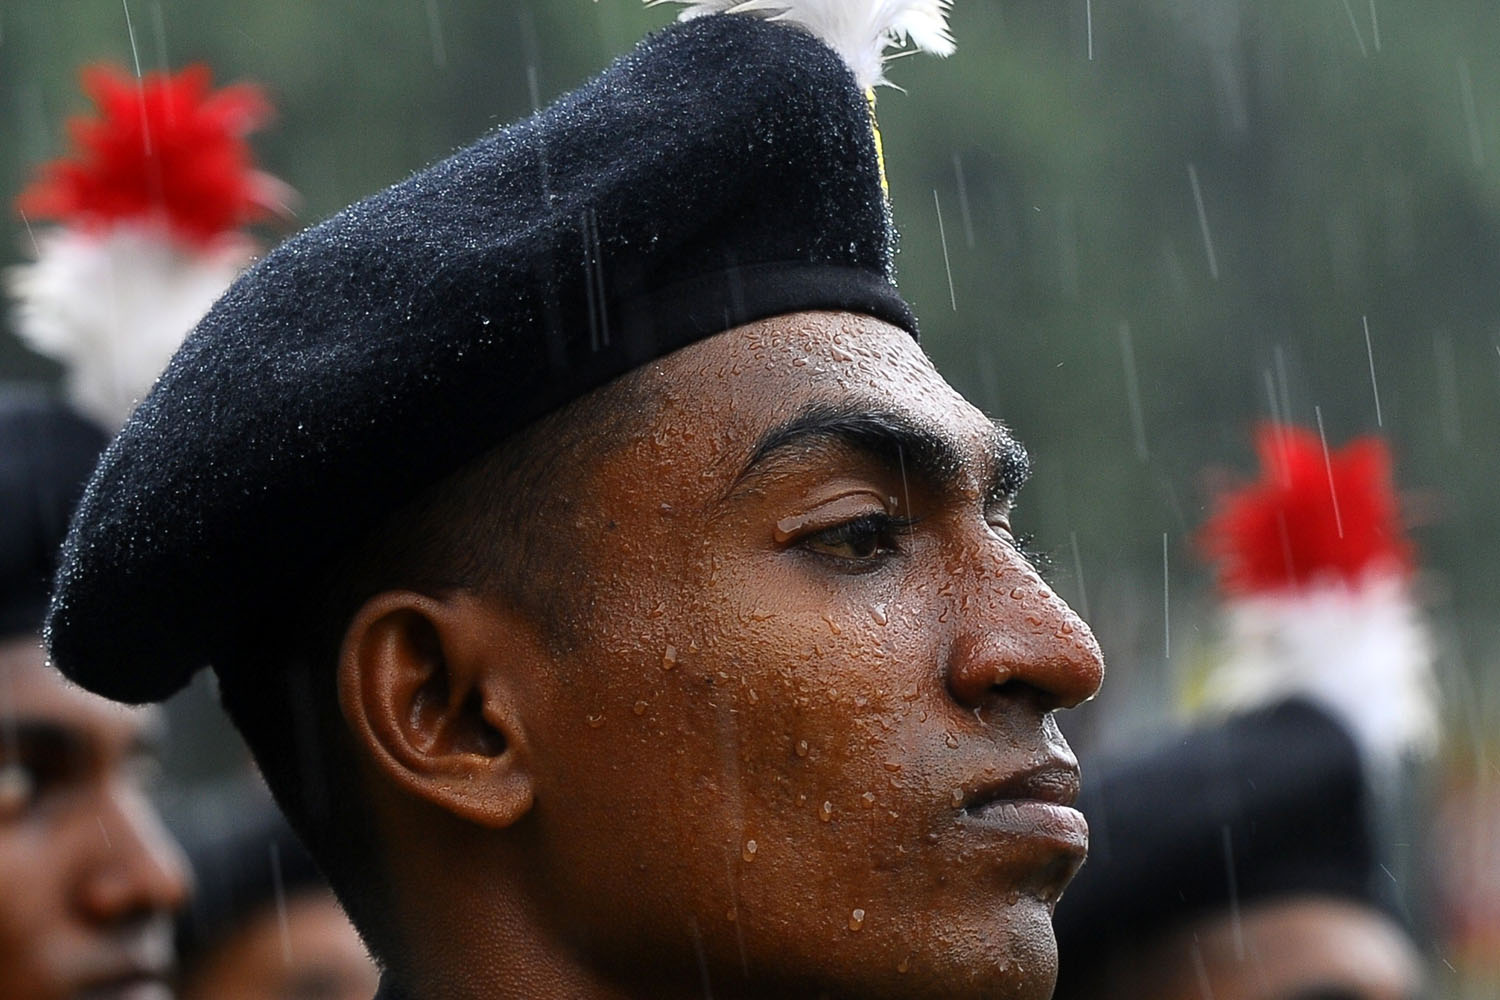 Oct. 10, 2013. A Sri Lankan soldier stands at attention as rain falls during the army's 64th anniversary and Army Day ceremony in Colombo.